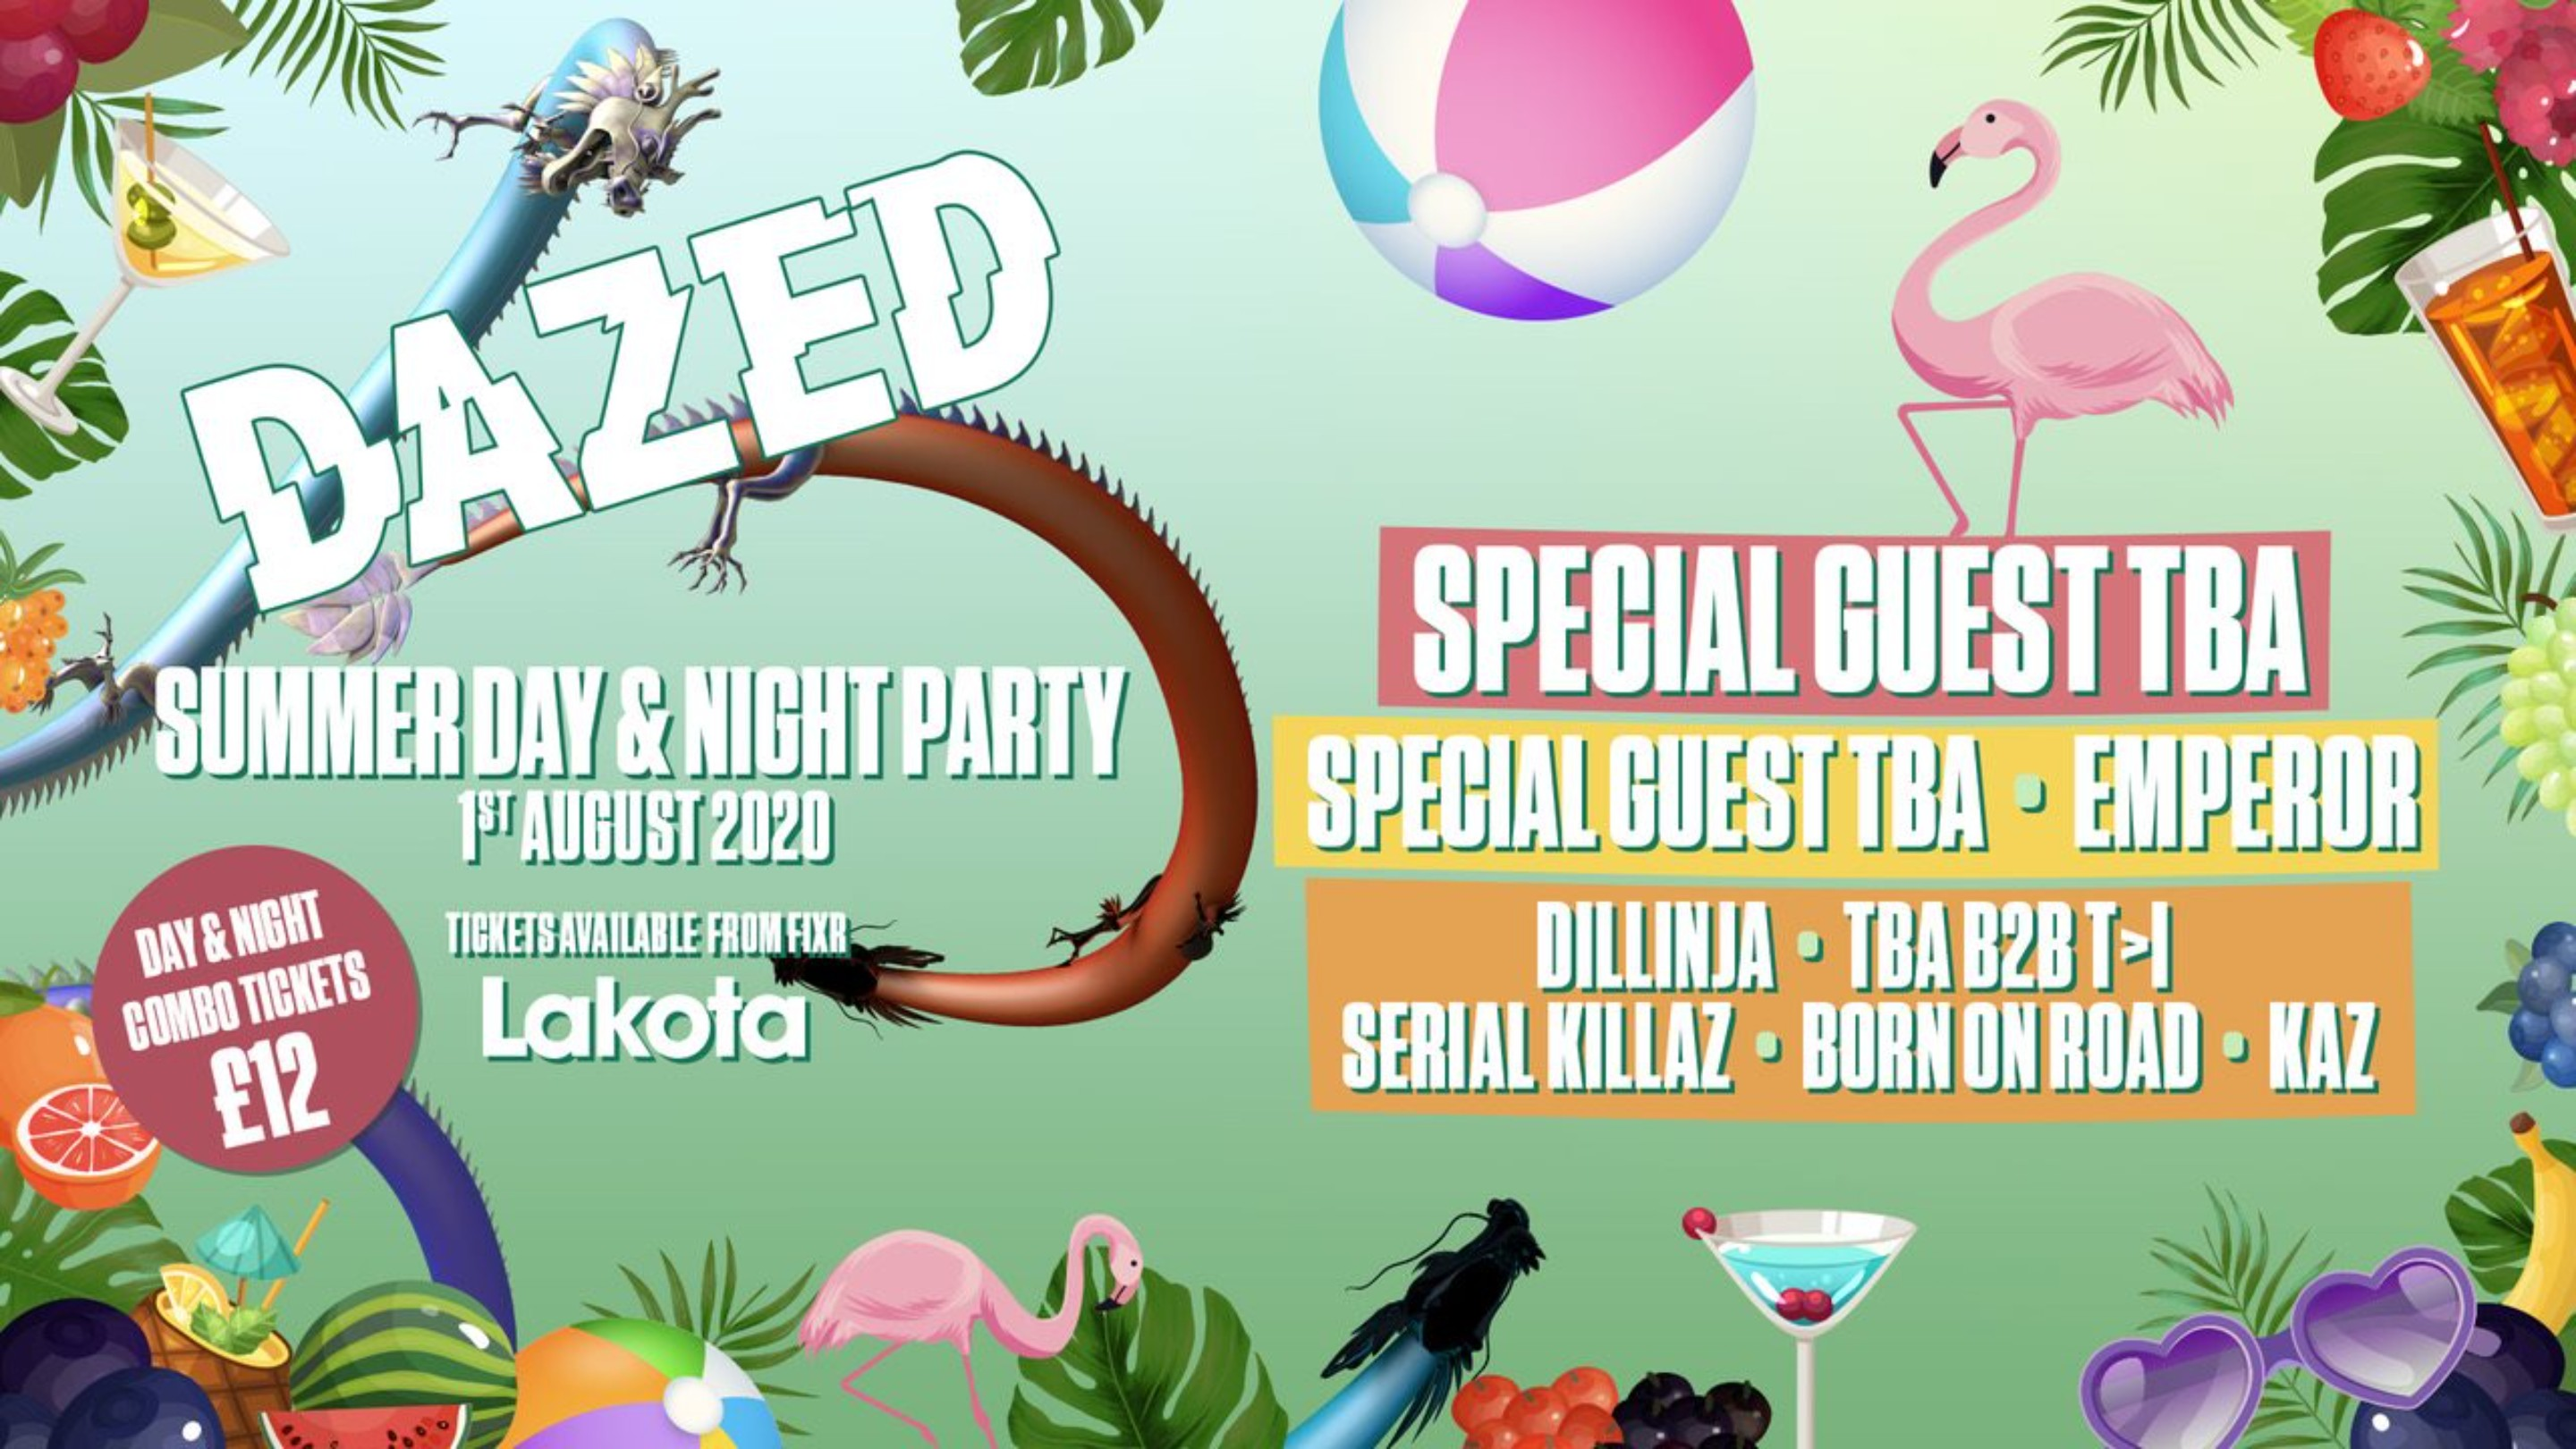 Dazed: Summer Day & Night Party